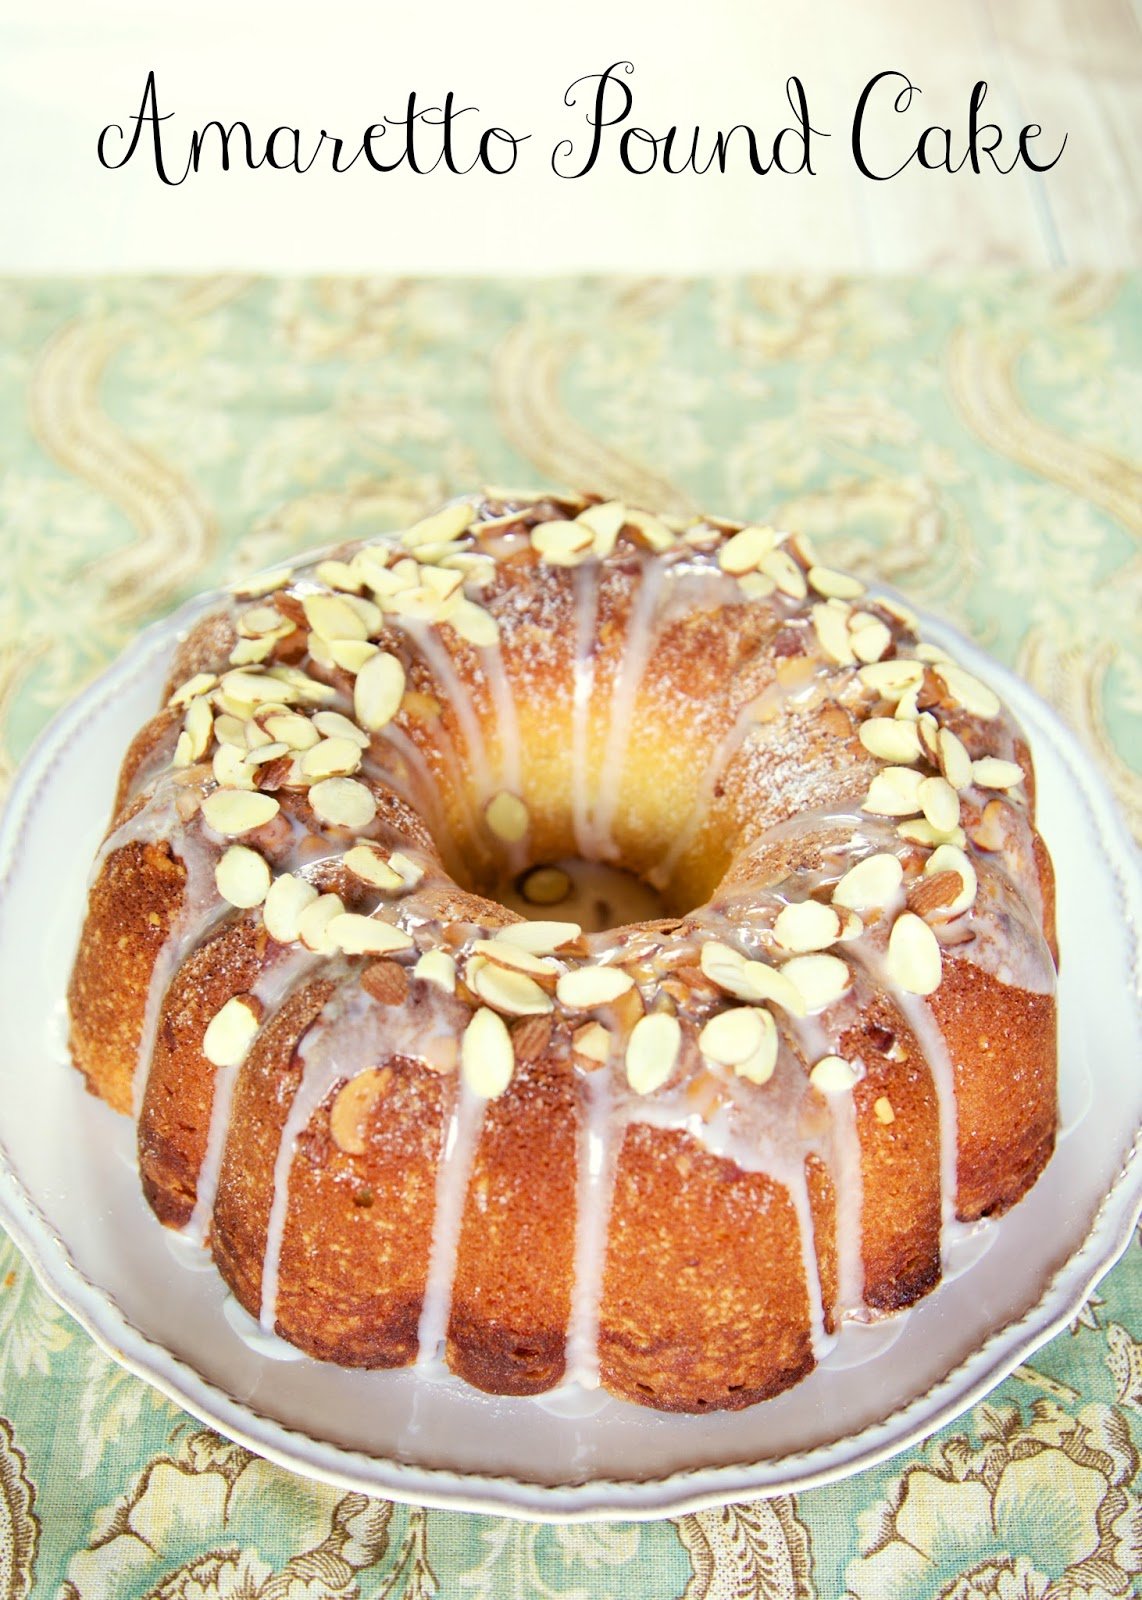 Amaretto Pound Cake - dangerously delicious!!! LOADED with tons of great almond flavor. Moist homemade cake topped with a homemade almond syrup and almond glaze. I ate WAY too much of this yummy cake!! Butter, cream cheese, sugar, amaretto, almond extract, flour, eggs, sliced almonds, powdered sugar and milk. #poundcake #dessert #dessertrecipe